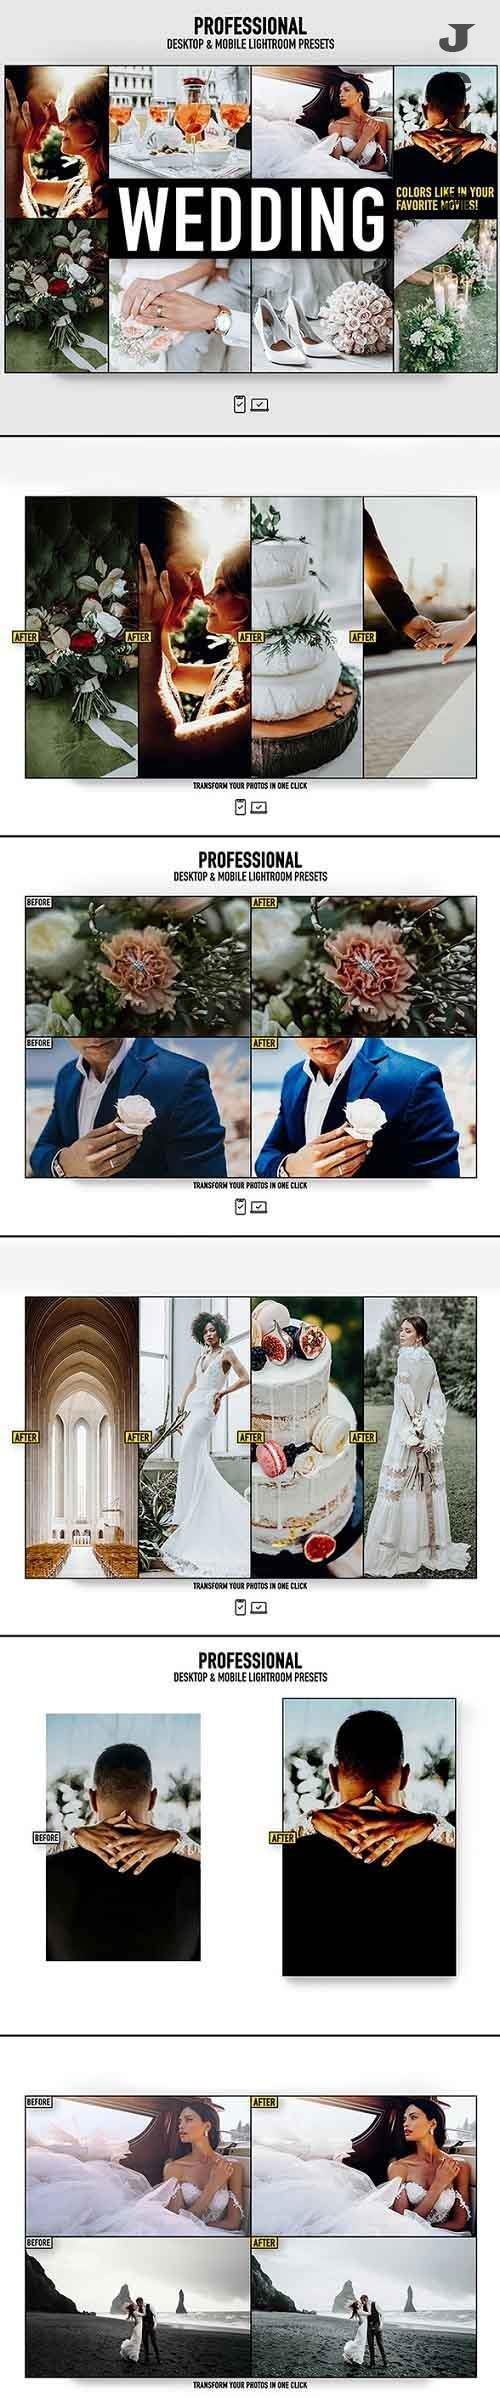 Wedding Lightroom Presets | Portraits Photography Actions 28283657